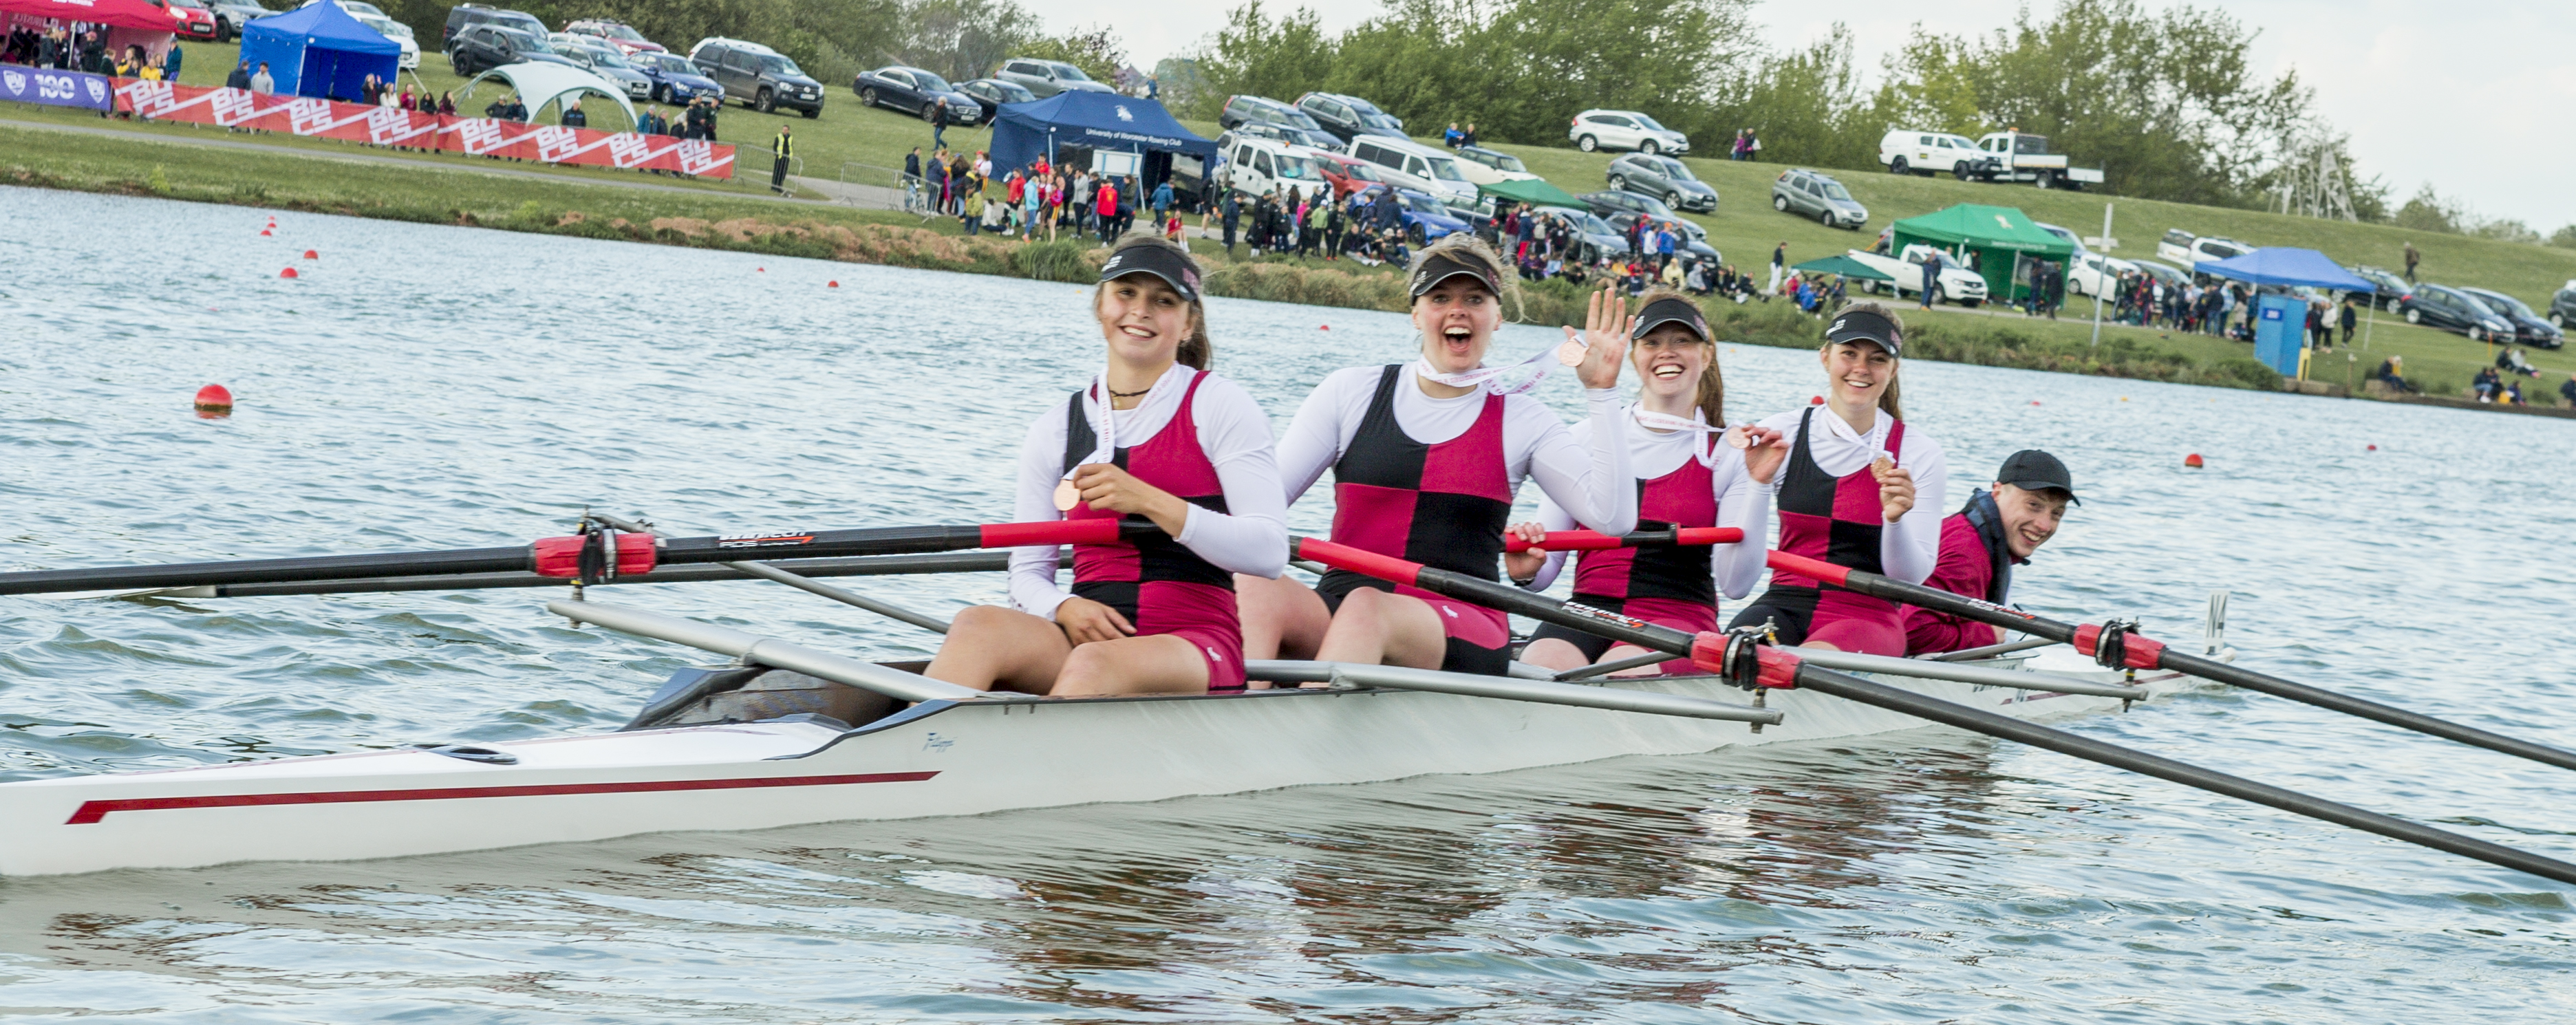 Elation for the Women's Beginner Coxed Four.